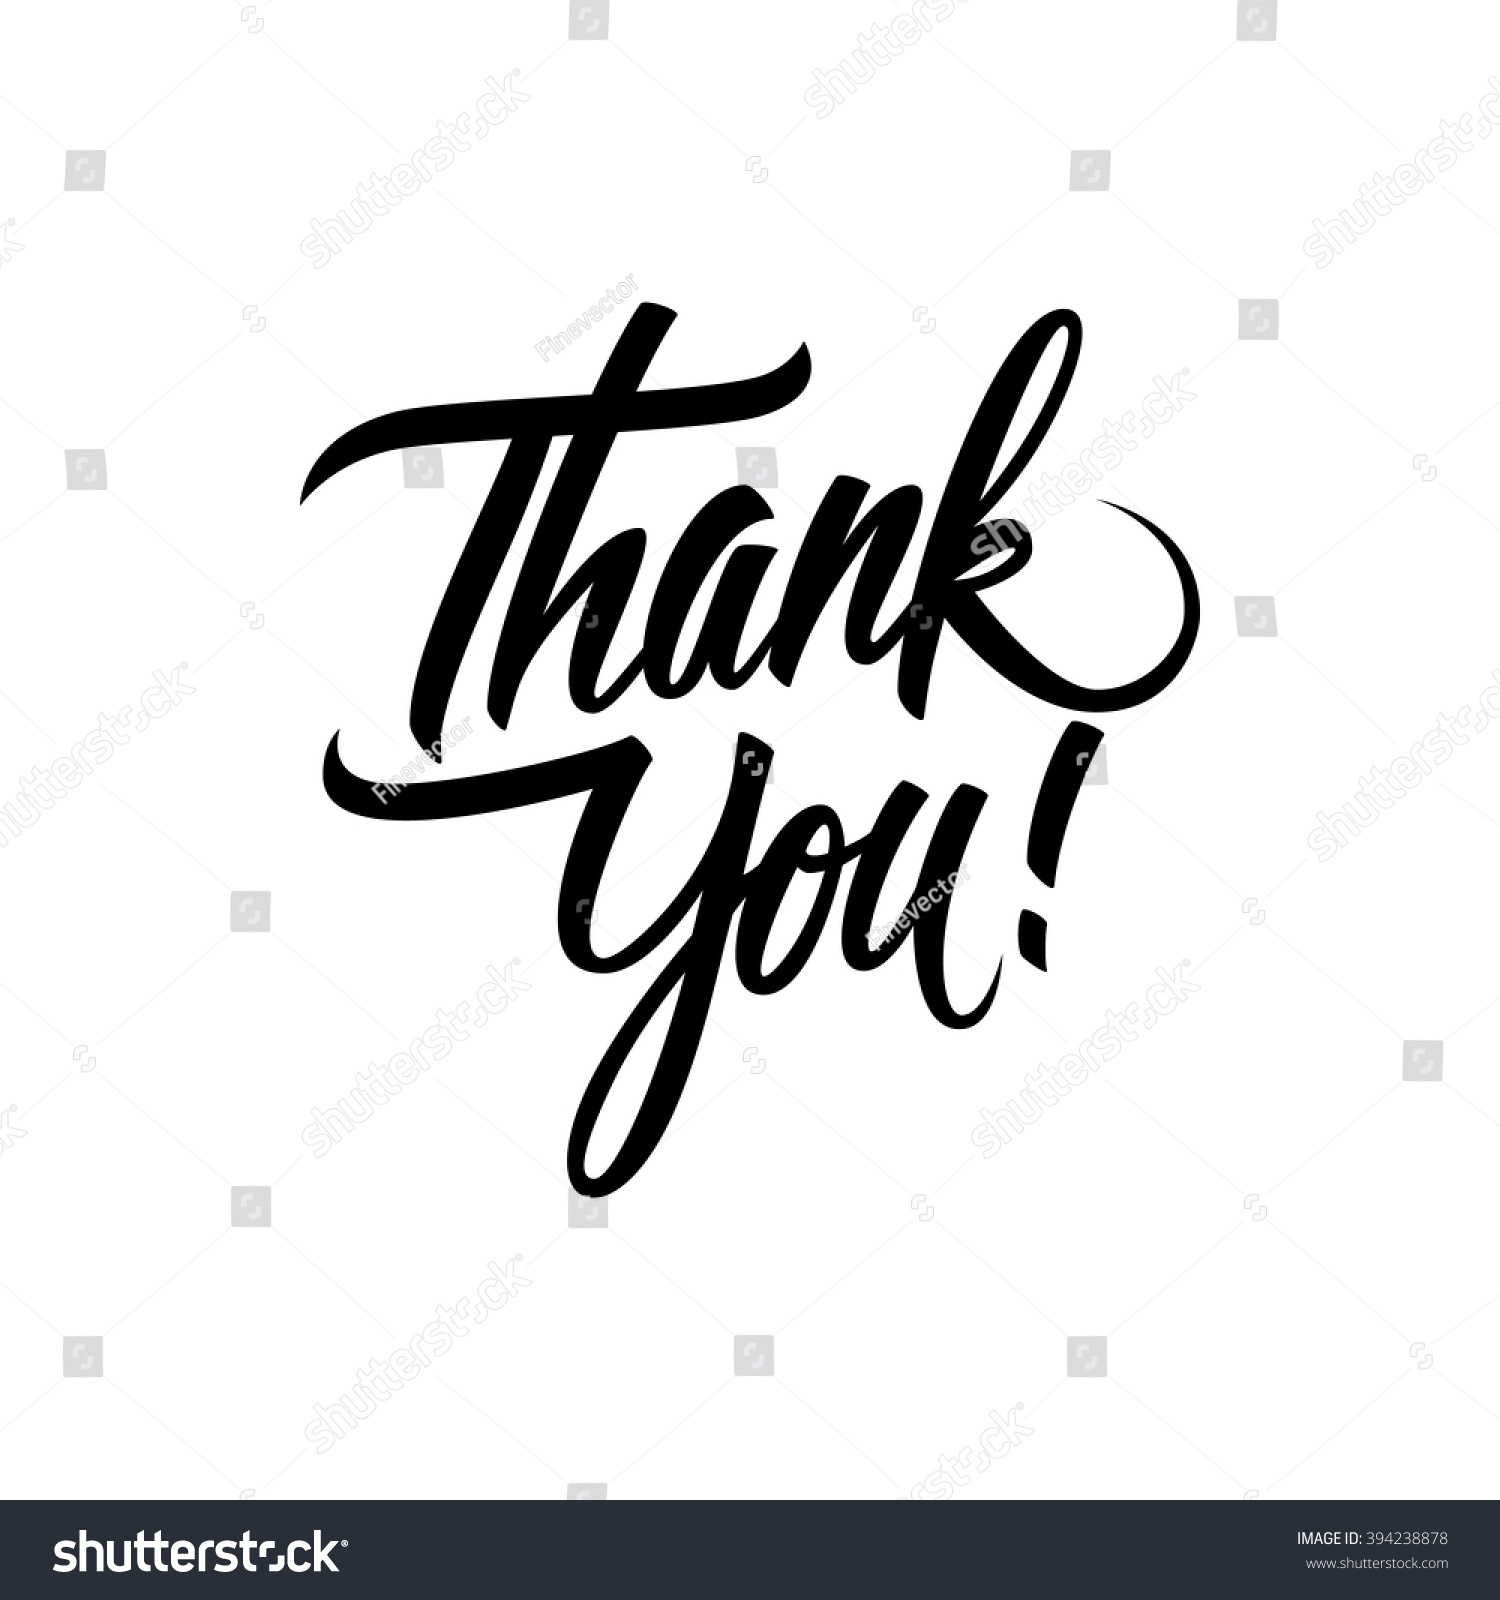 Thank You Handwritten Inscription Hand Drawn Stock Vector